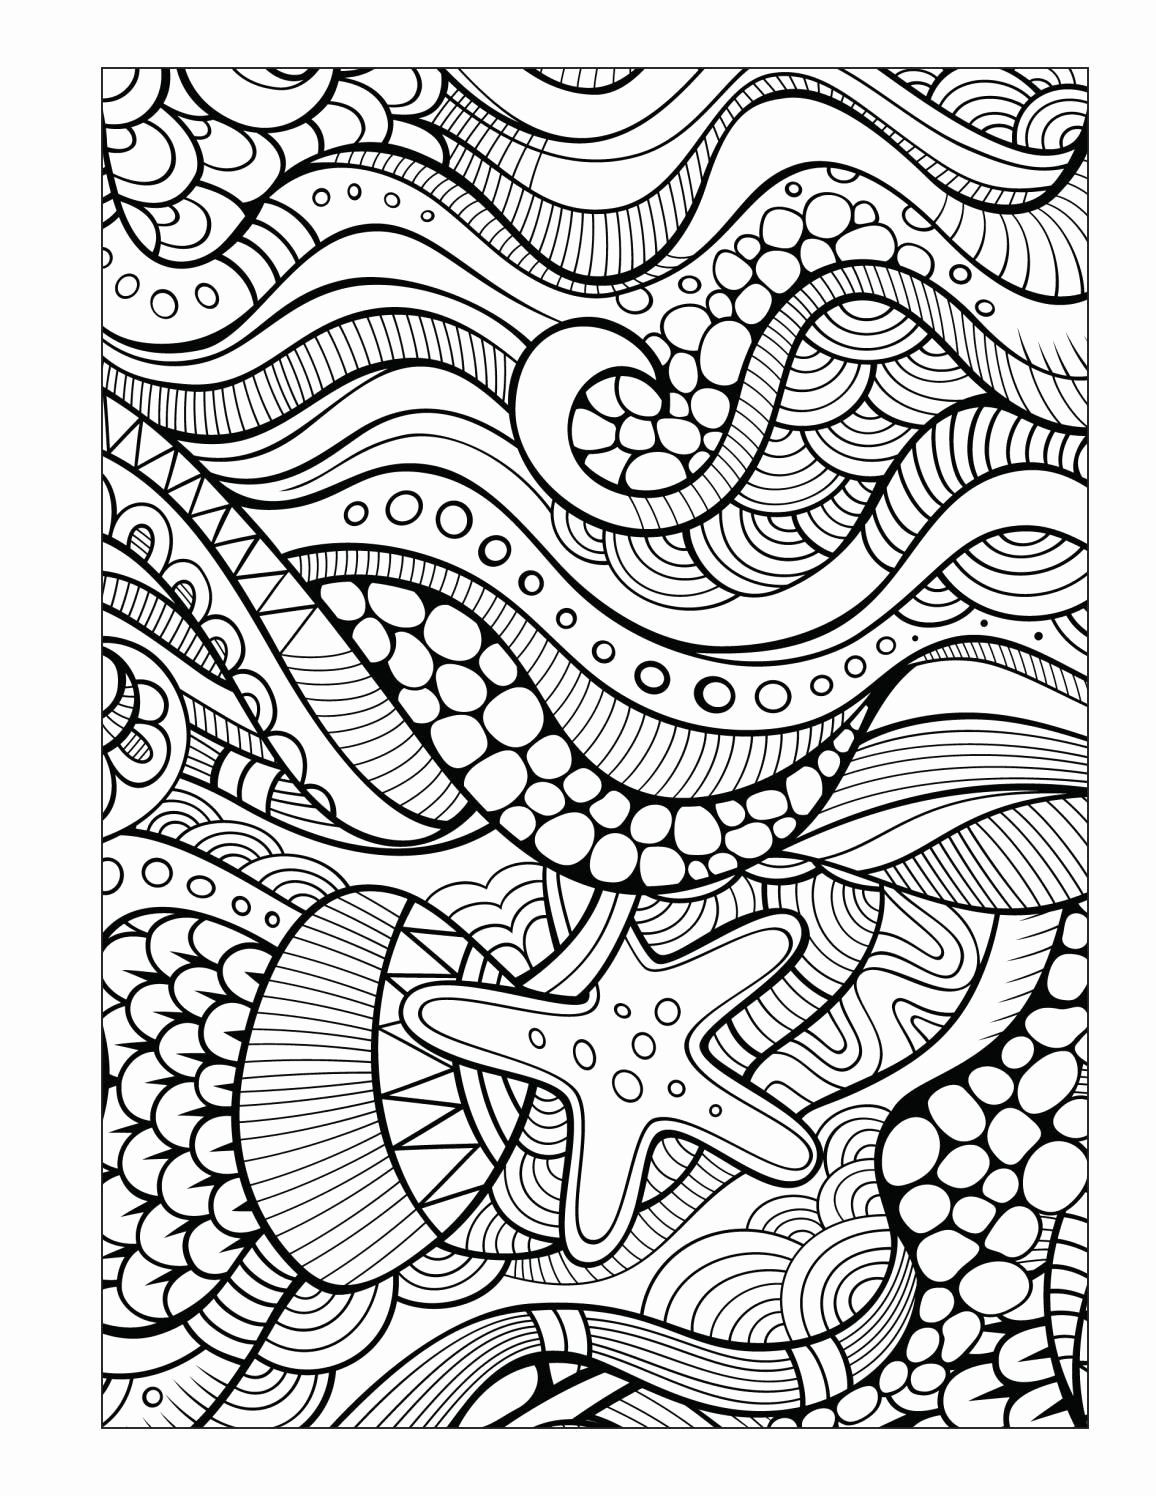 Coloring Books For Men Awesome Coloring Book Best Coloring Books Foren Adults And Women In 2020 Coloring Books Coloring Book Set Ocean Coloring Pages